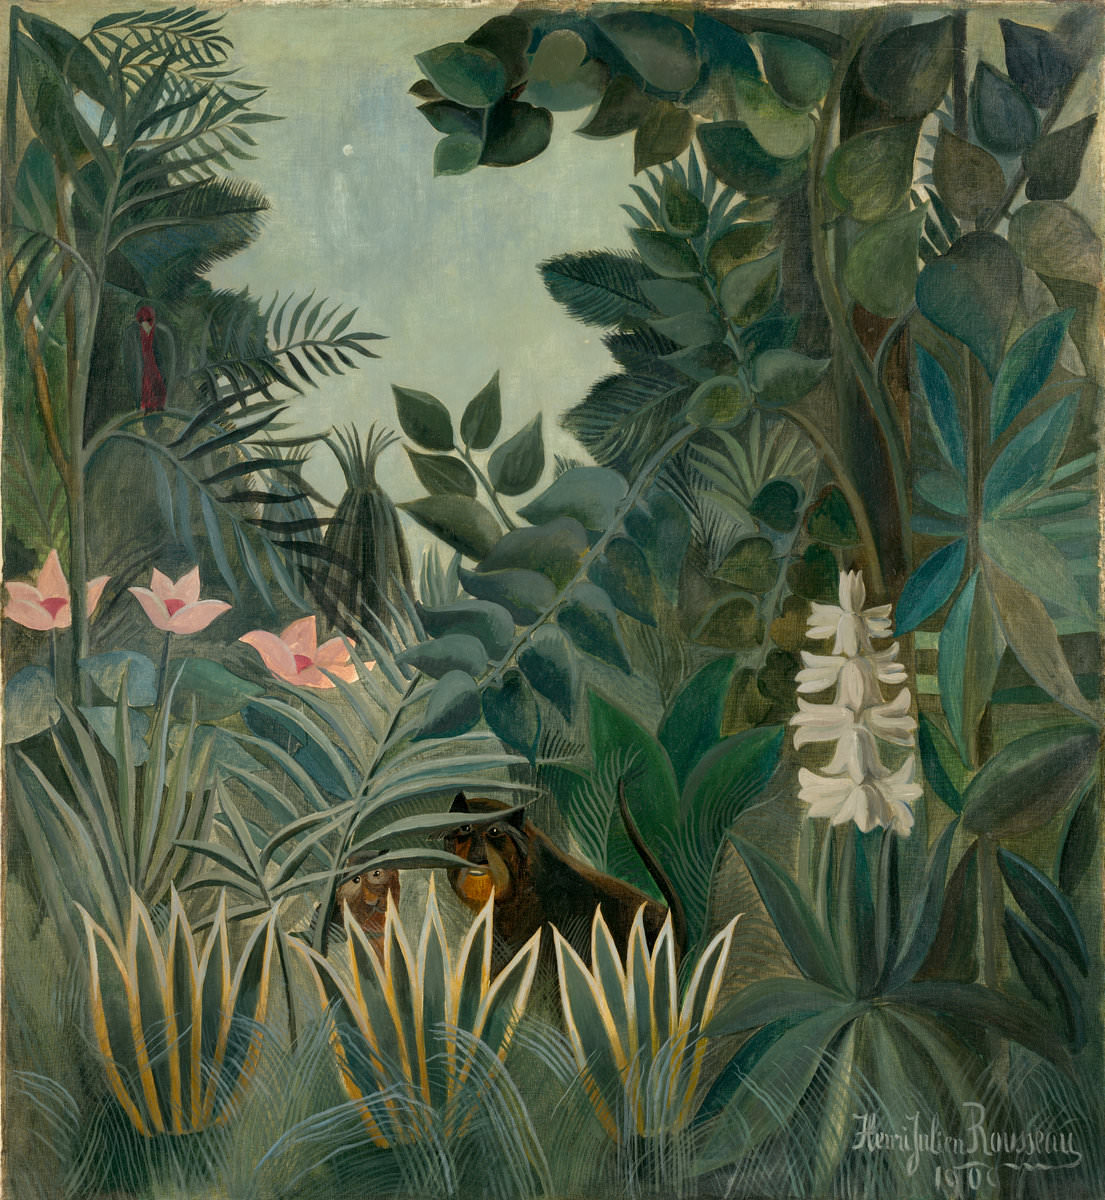 Fig. 17 -La selva, Henri Rousseau, 1909. National Gallery of Art, Washington. Colección de Chester Dale.